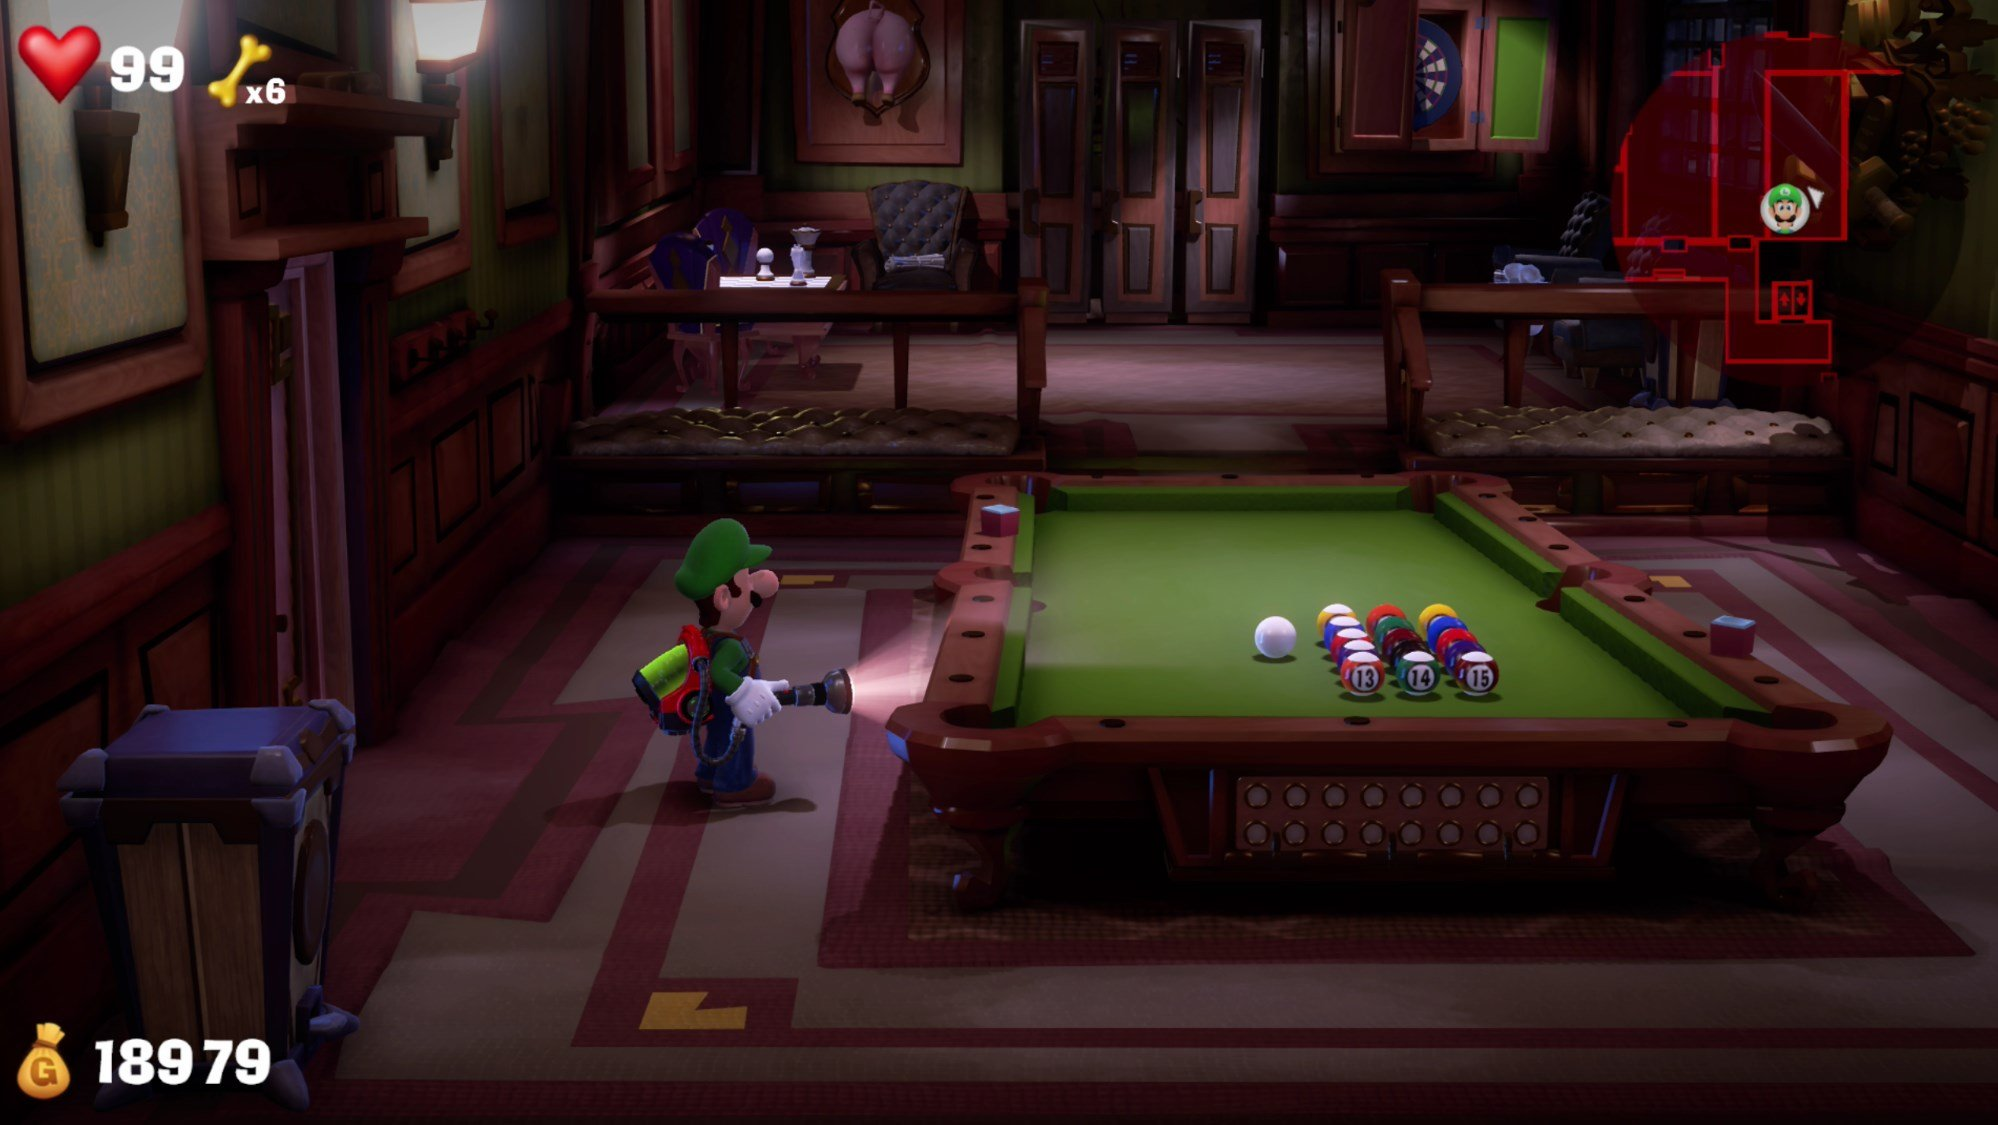 How to clear the billiards table on 2F in Luigi's Mansion 3